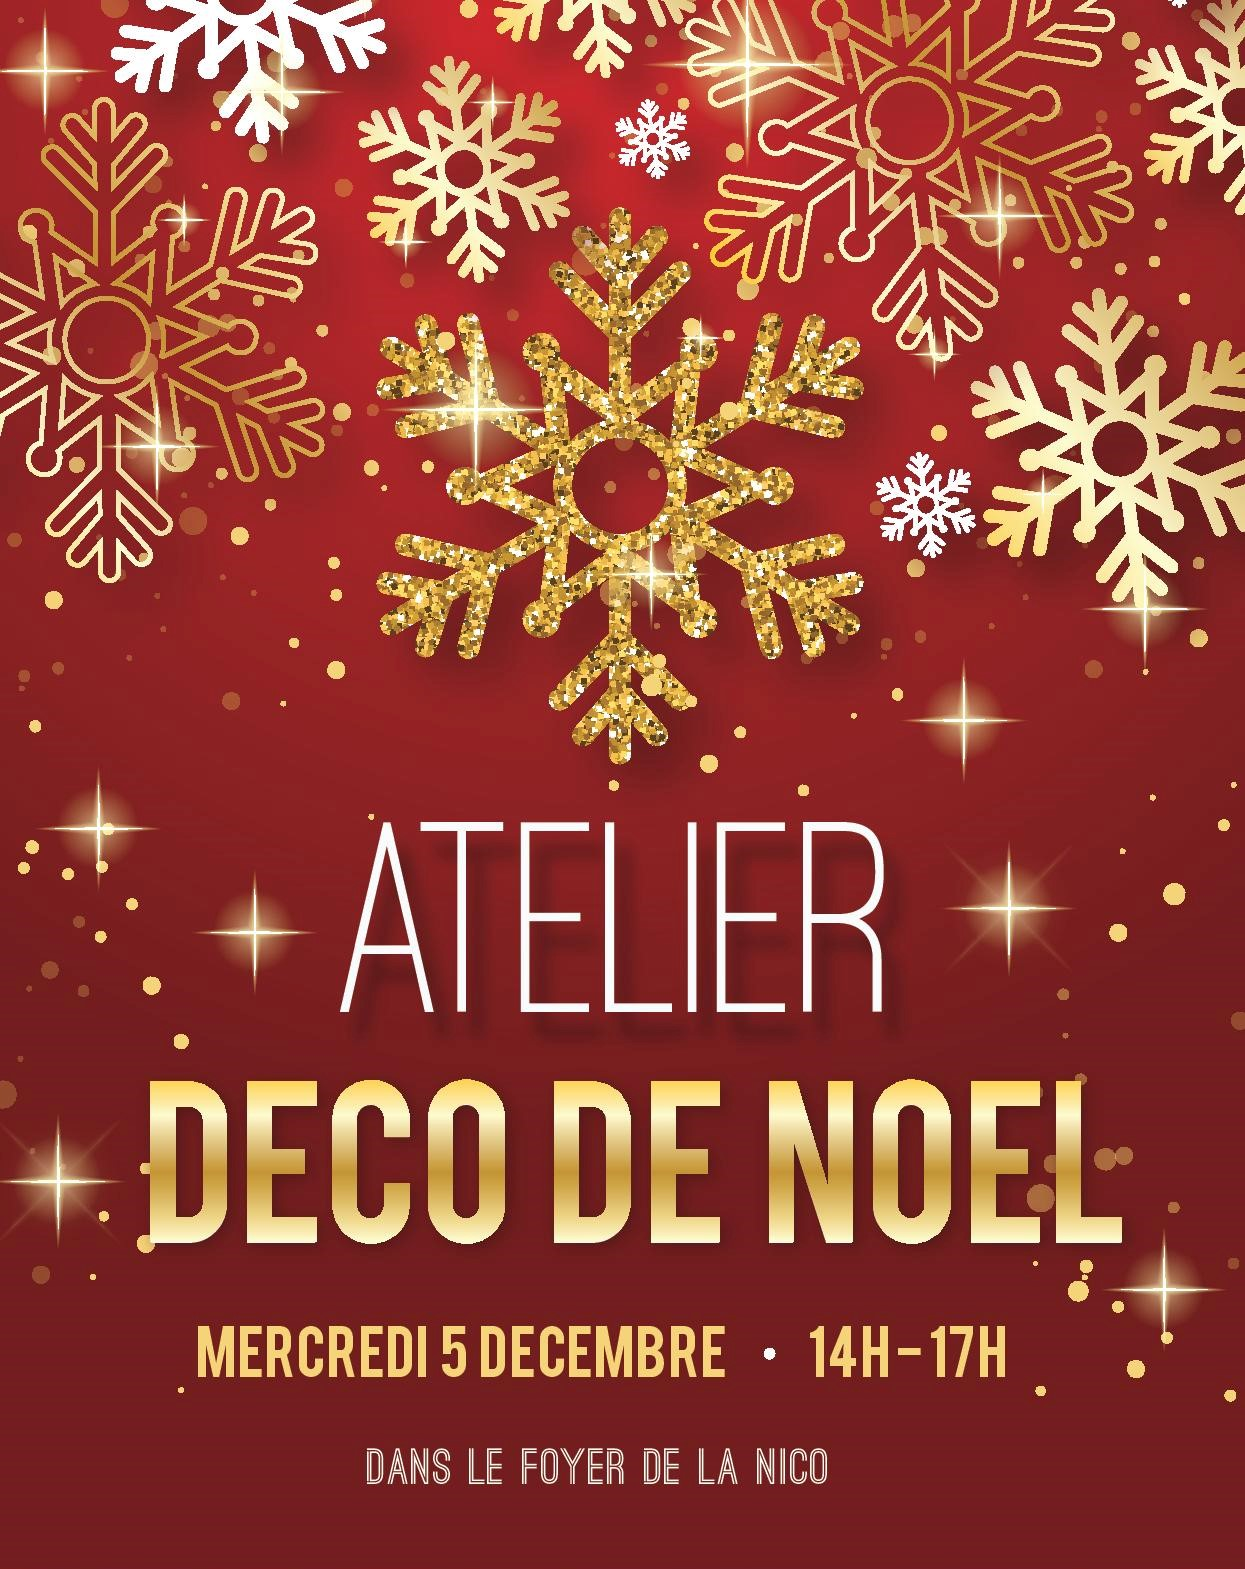 Atelier Decoration De Noel Atelier Décorations De Noël